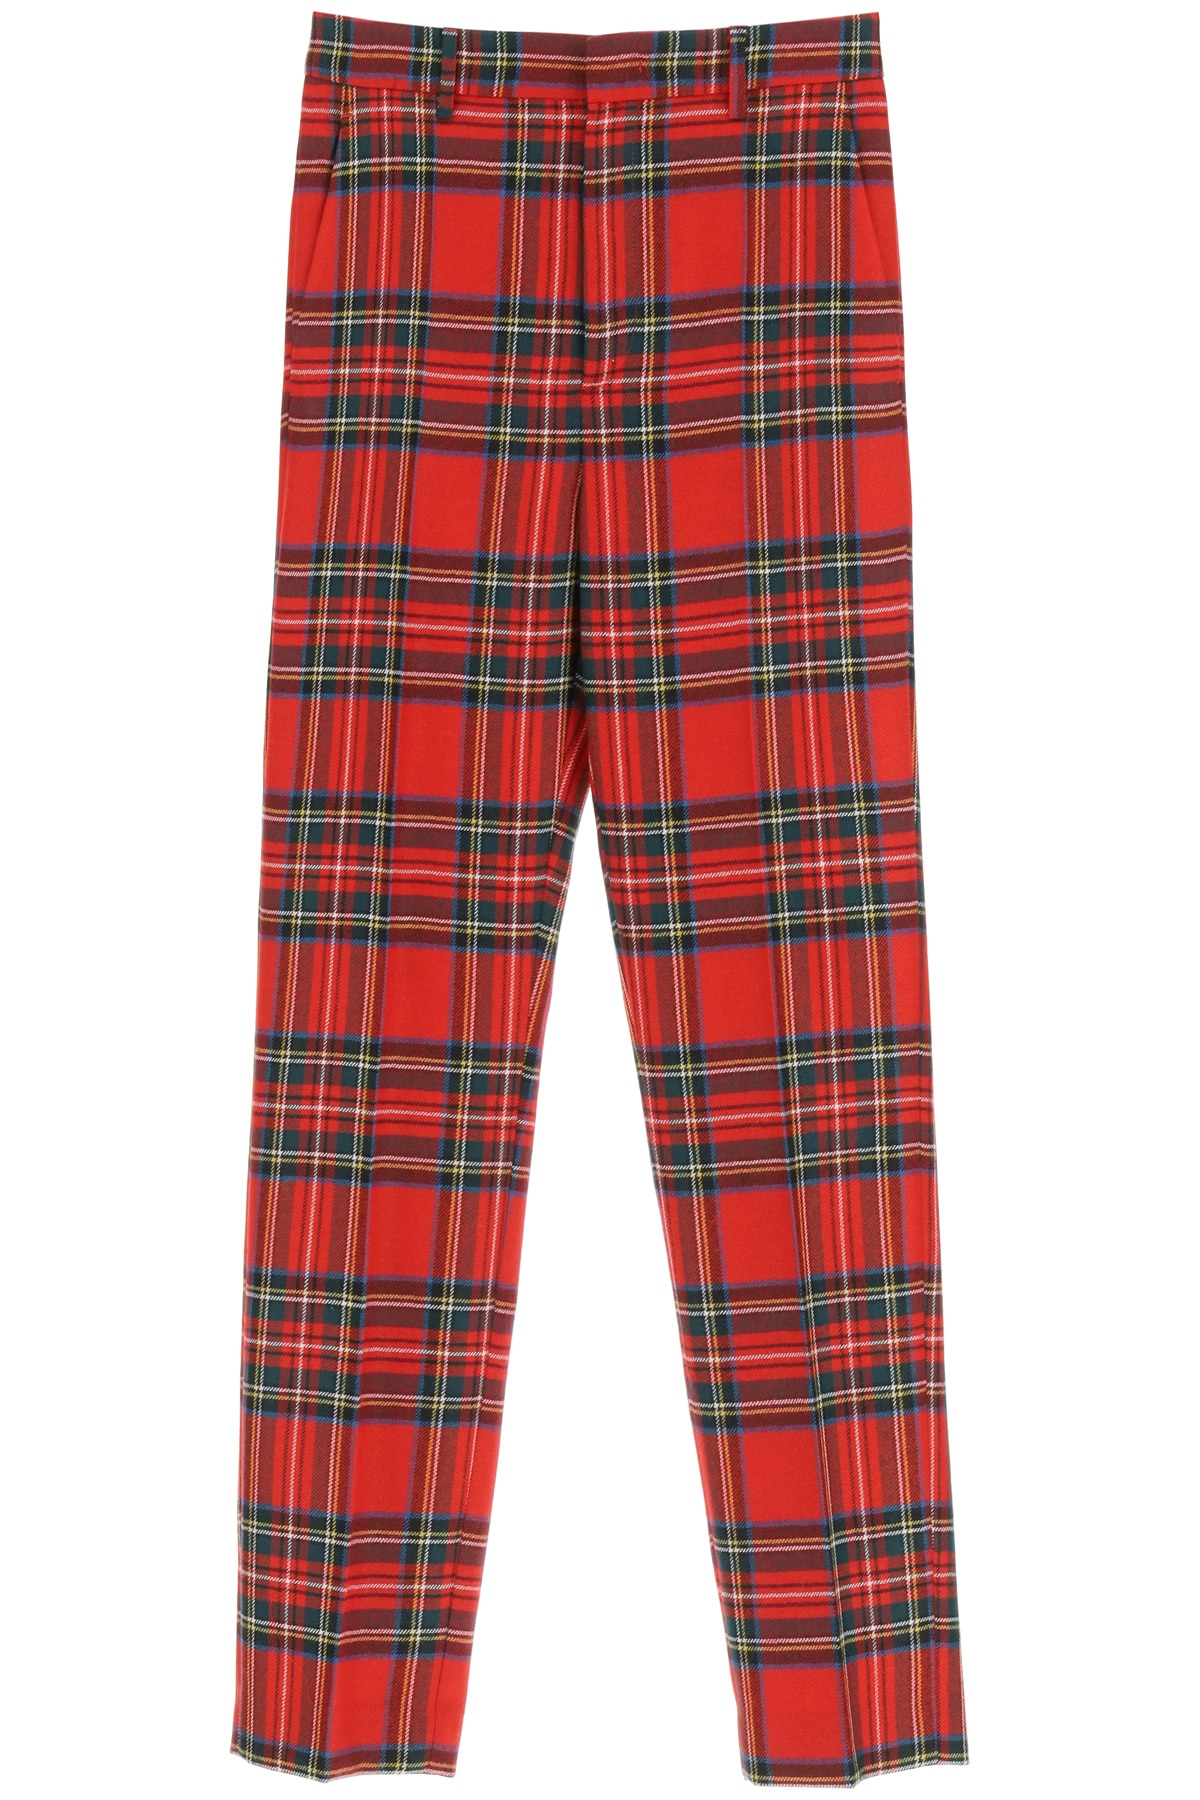 Red Valentino Plaid Wool Trousers 38 Red Wool